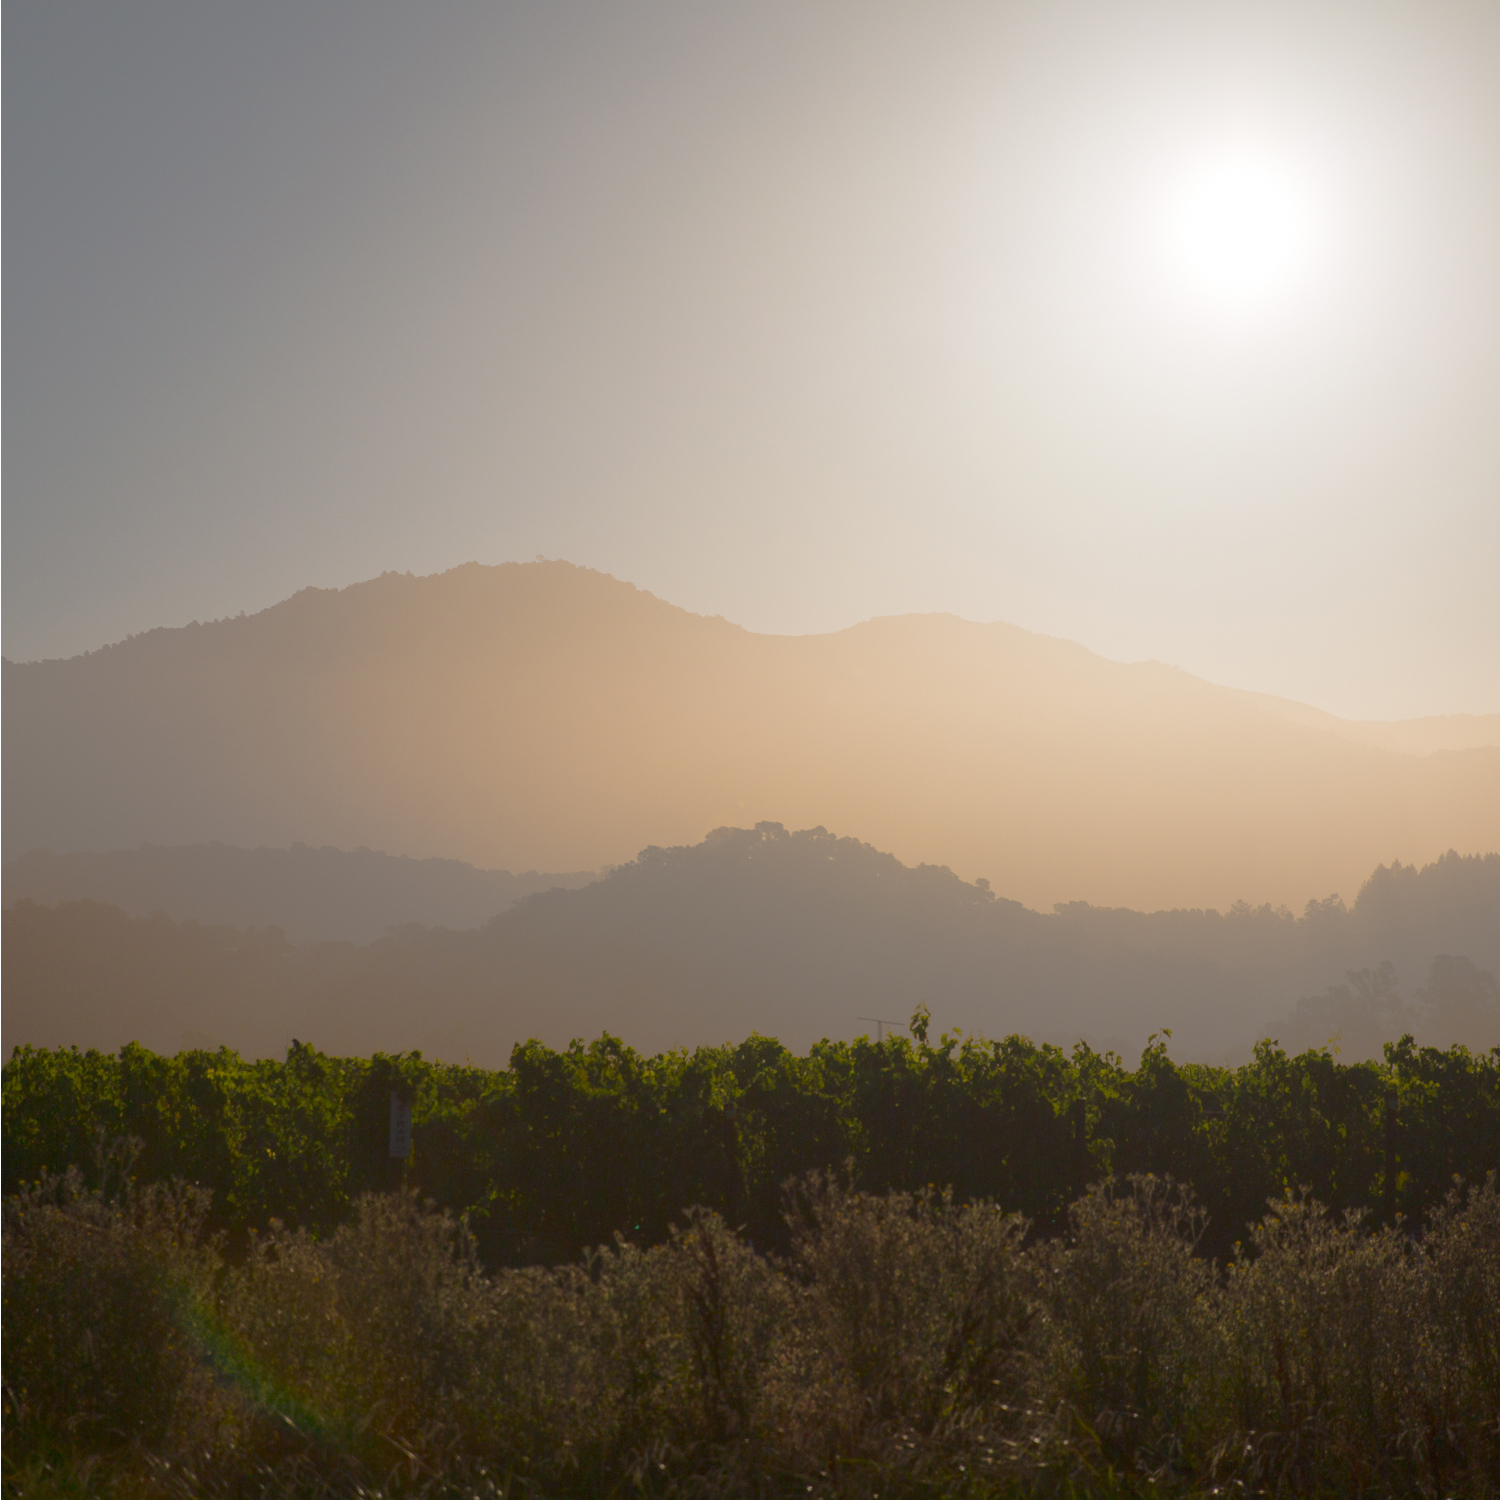 Grapevines, just after dawn, Napa Valley, California